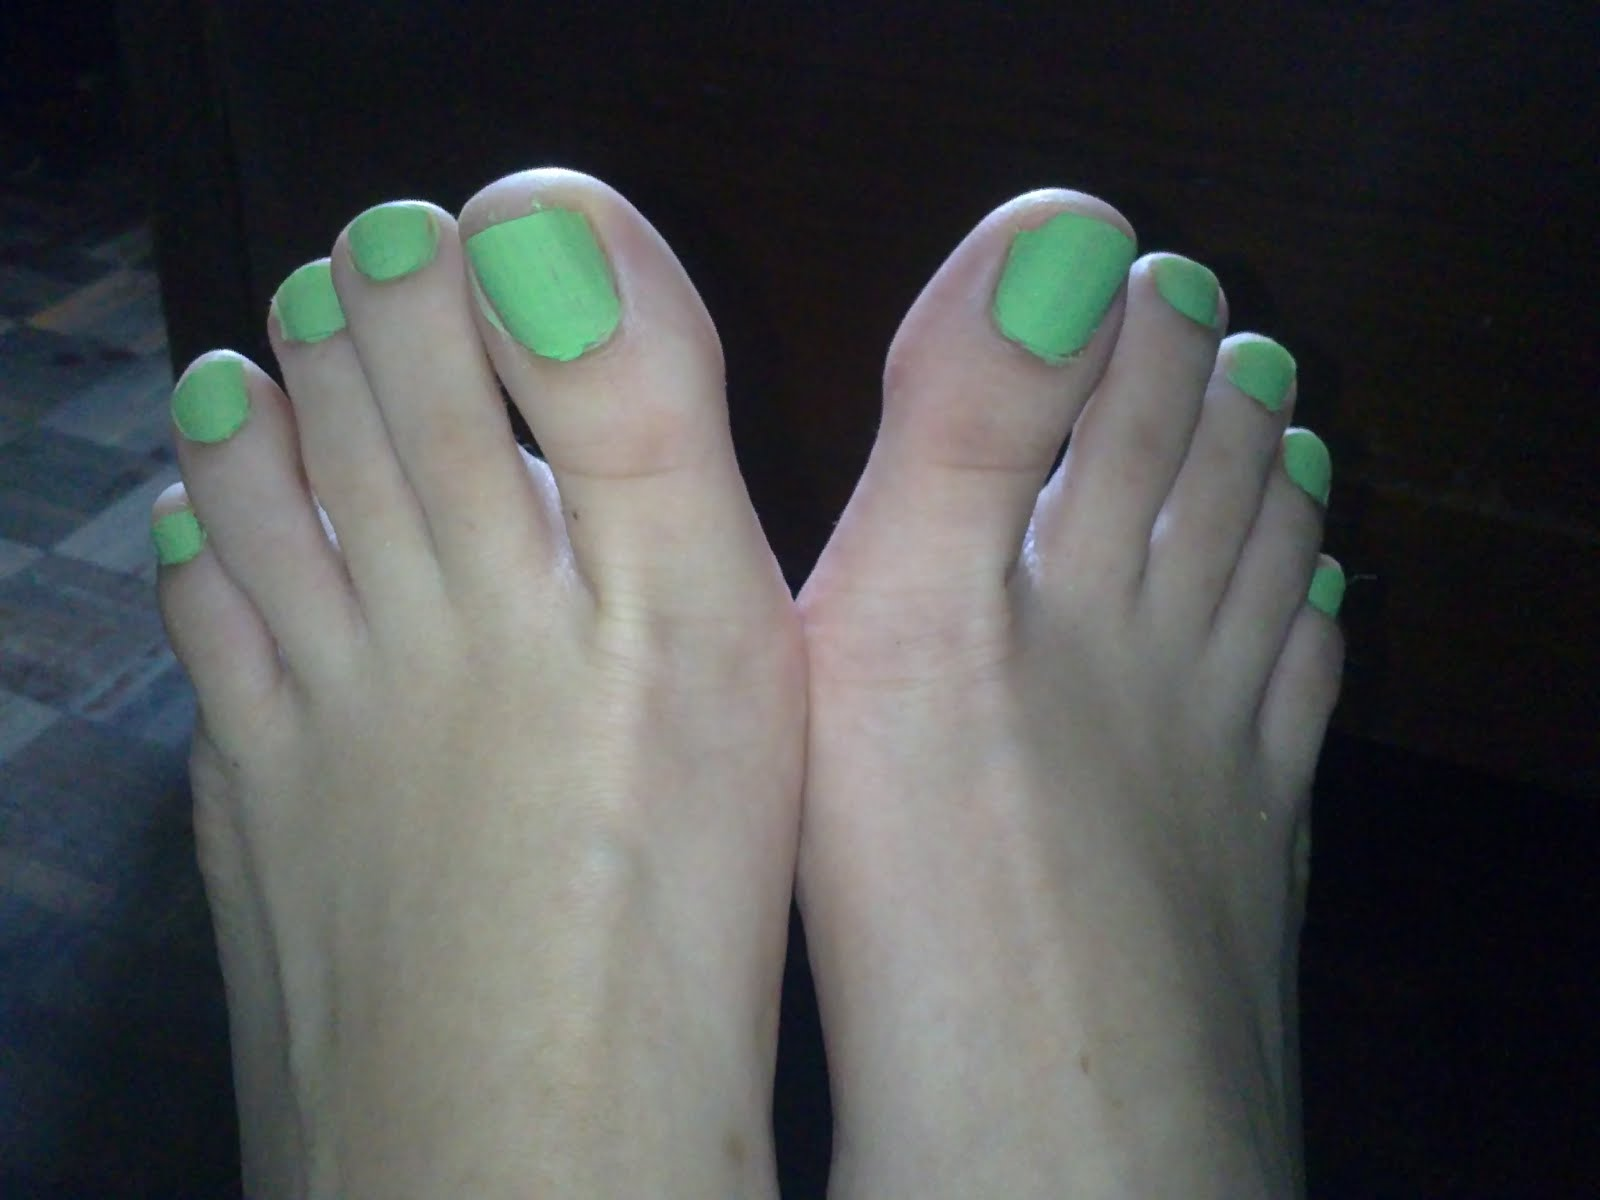 This Green Matte Is On The Toenails And I Felt Like Shrek After Putting It Effect Really There Very Powdery Looks Cakey Imagine